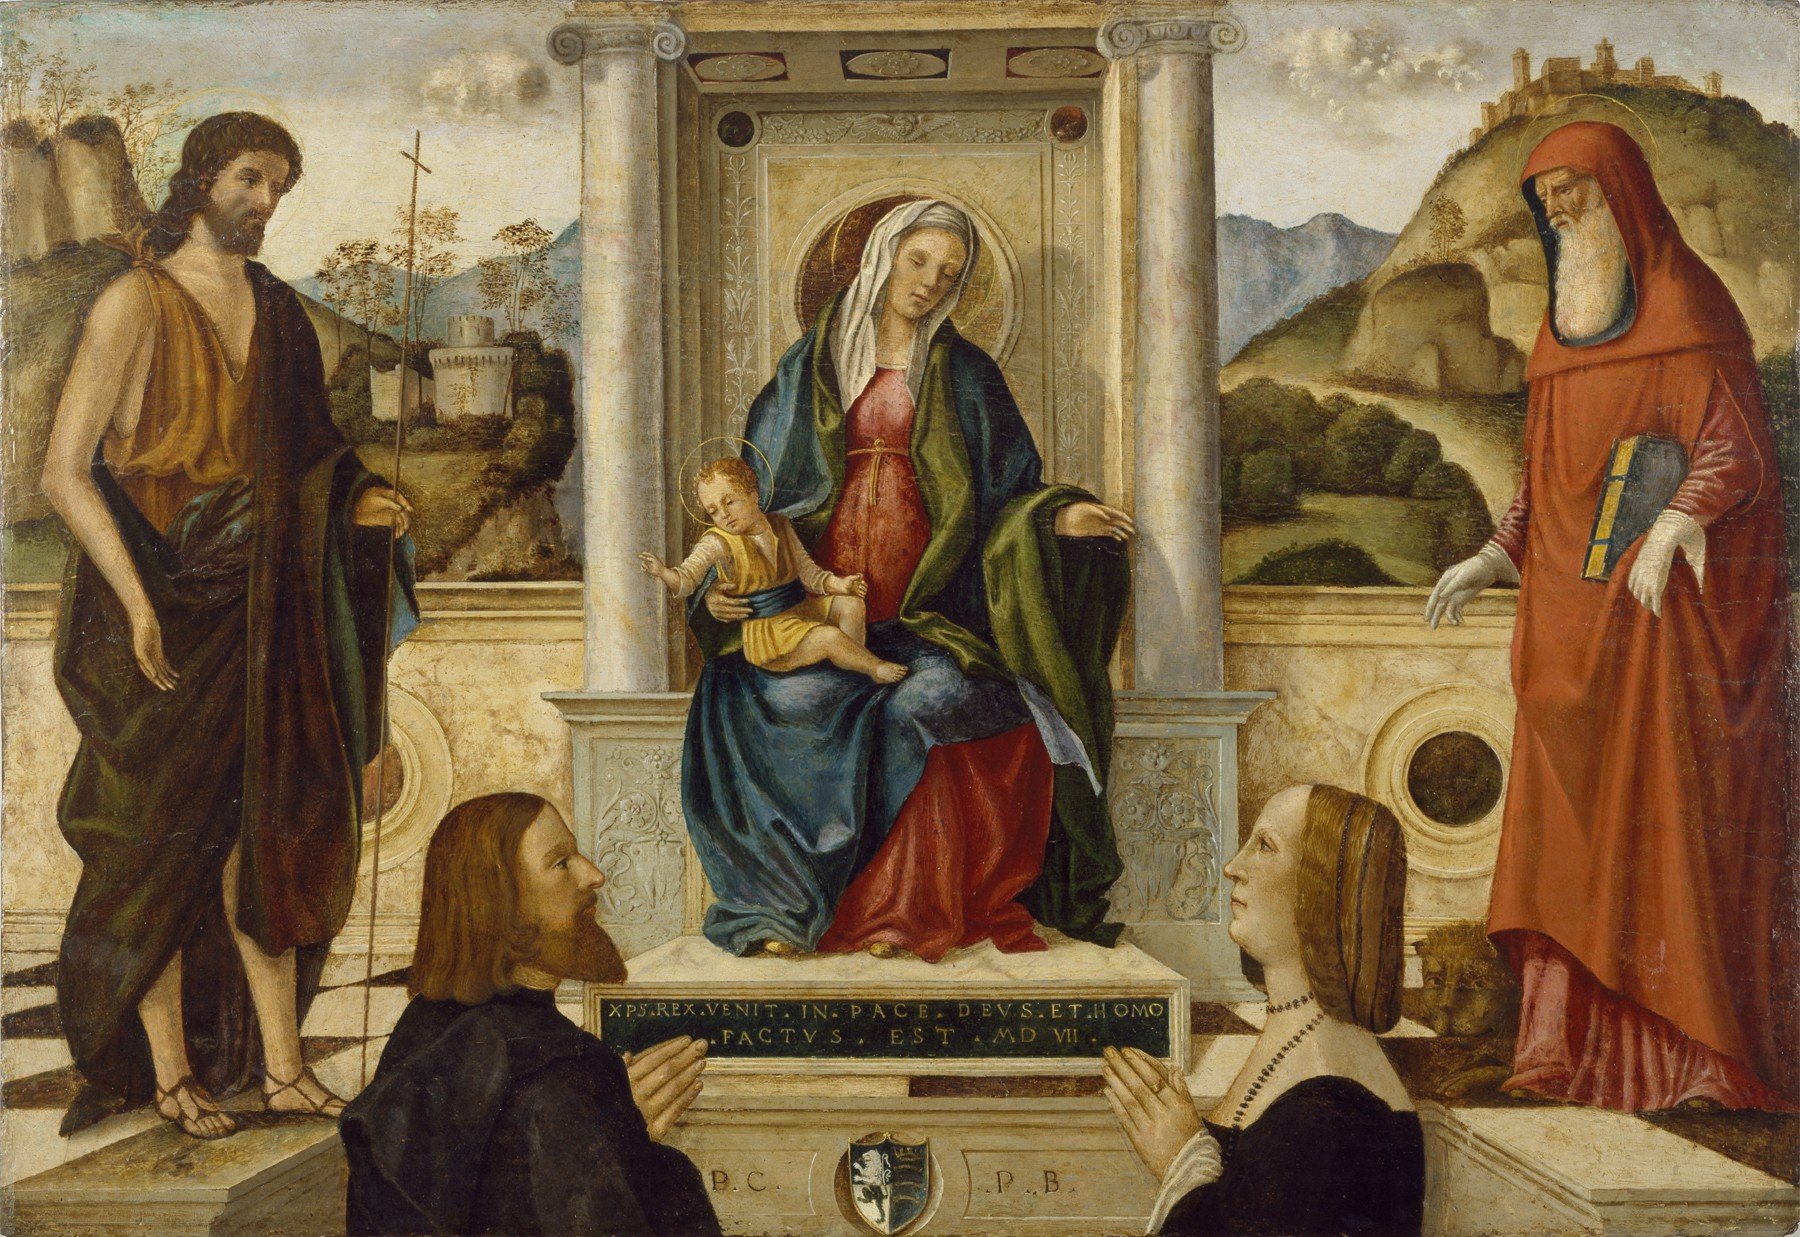 1507 Carpaccio Walters Art Museum Madonna and Child Enthroned with Saints and Donori